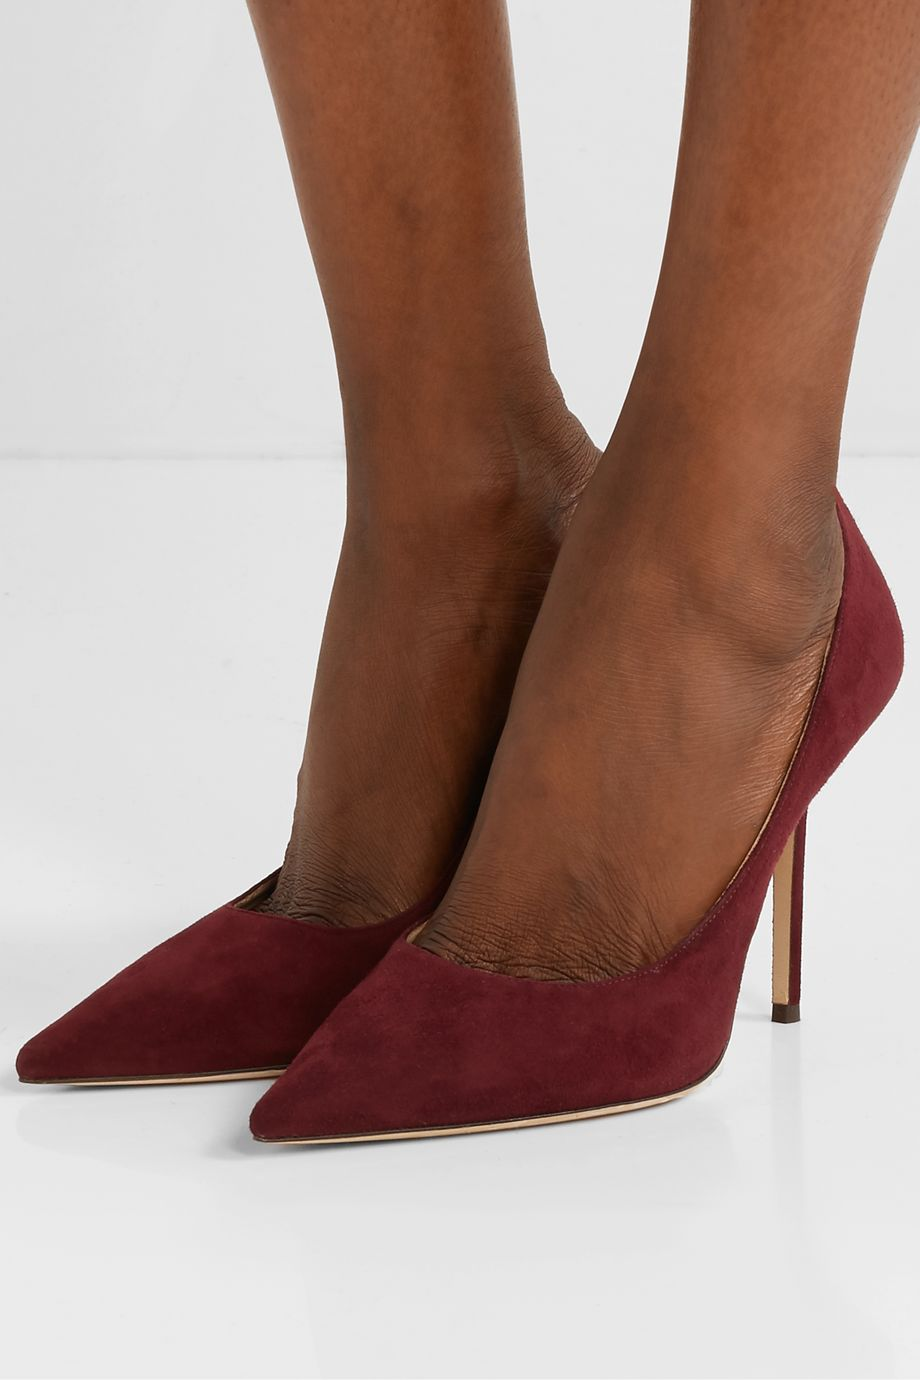 Jimmy Choo Love 100 suede pumps